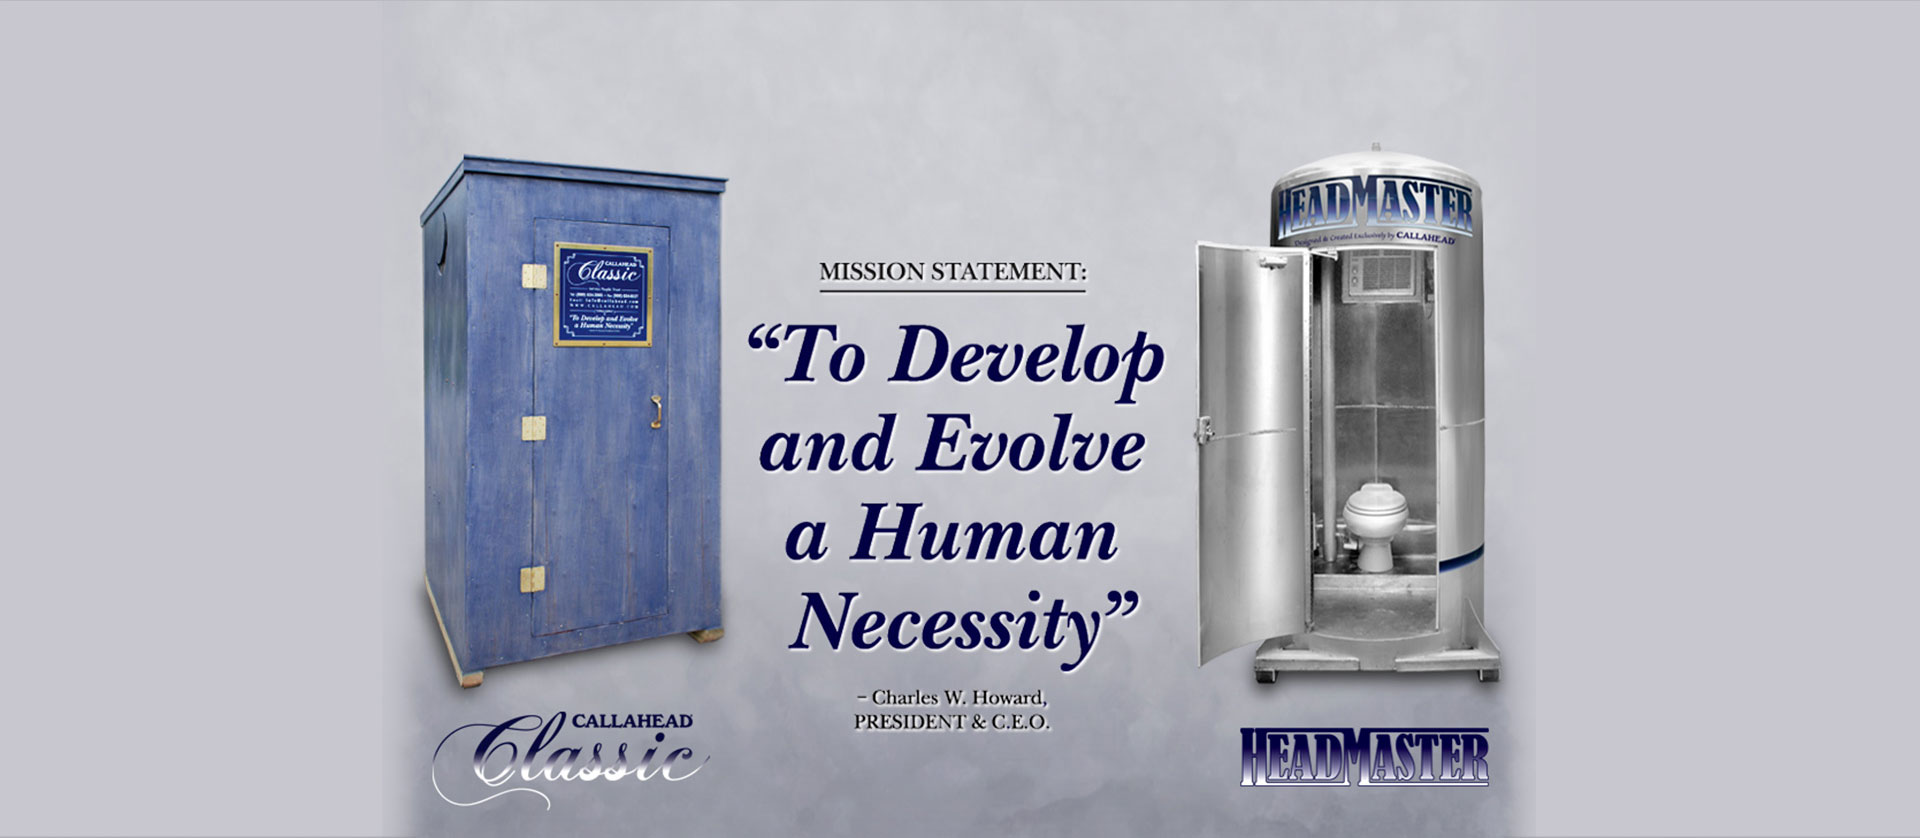 Mission Statement: To Develop and Evolve a Human Necessity - Charles W. Howard, President and CEO